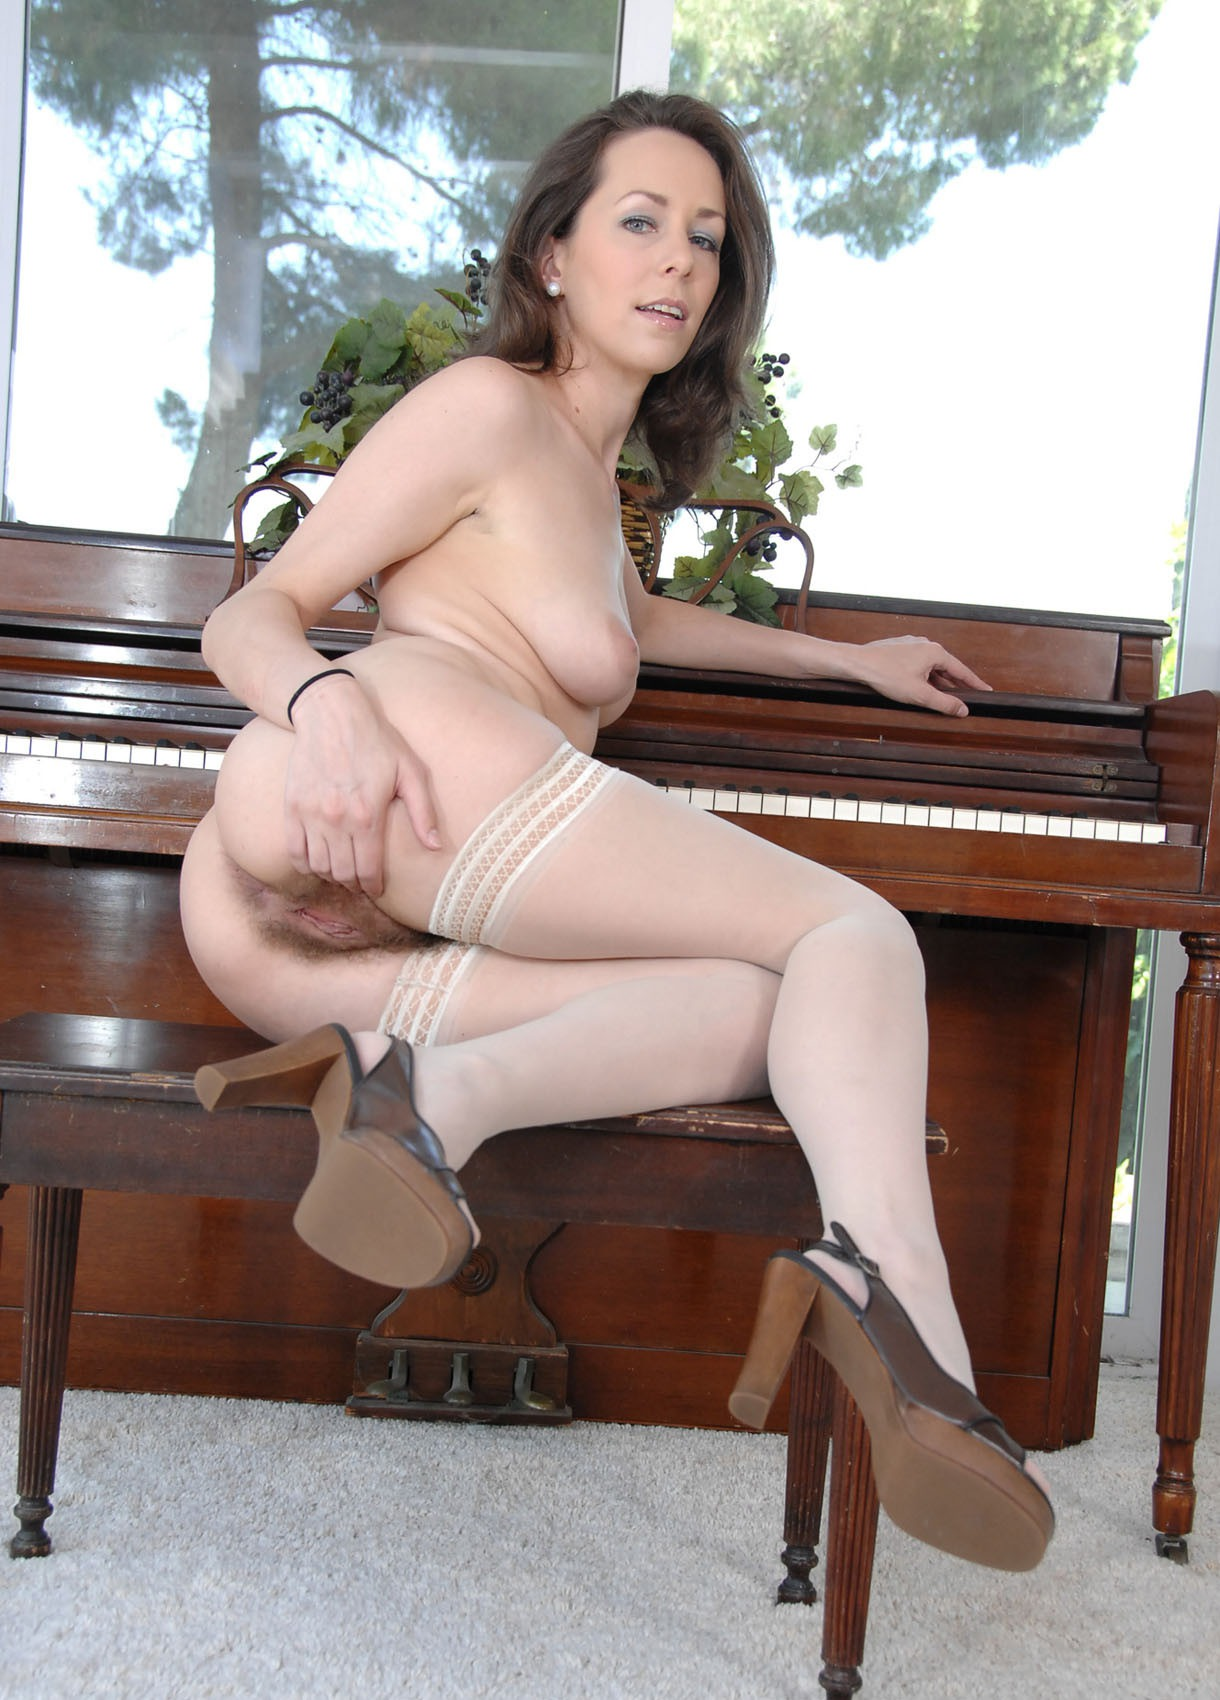 sandrine clementine xvideos free watch and download